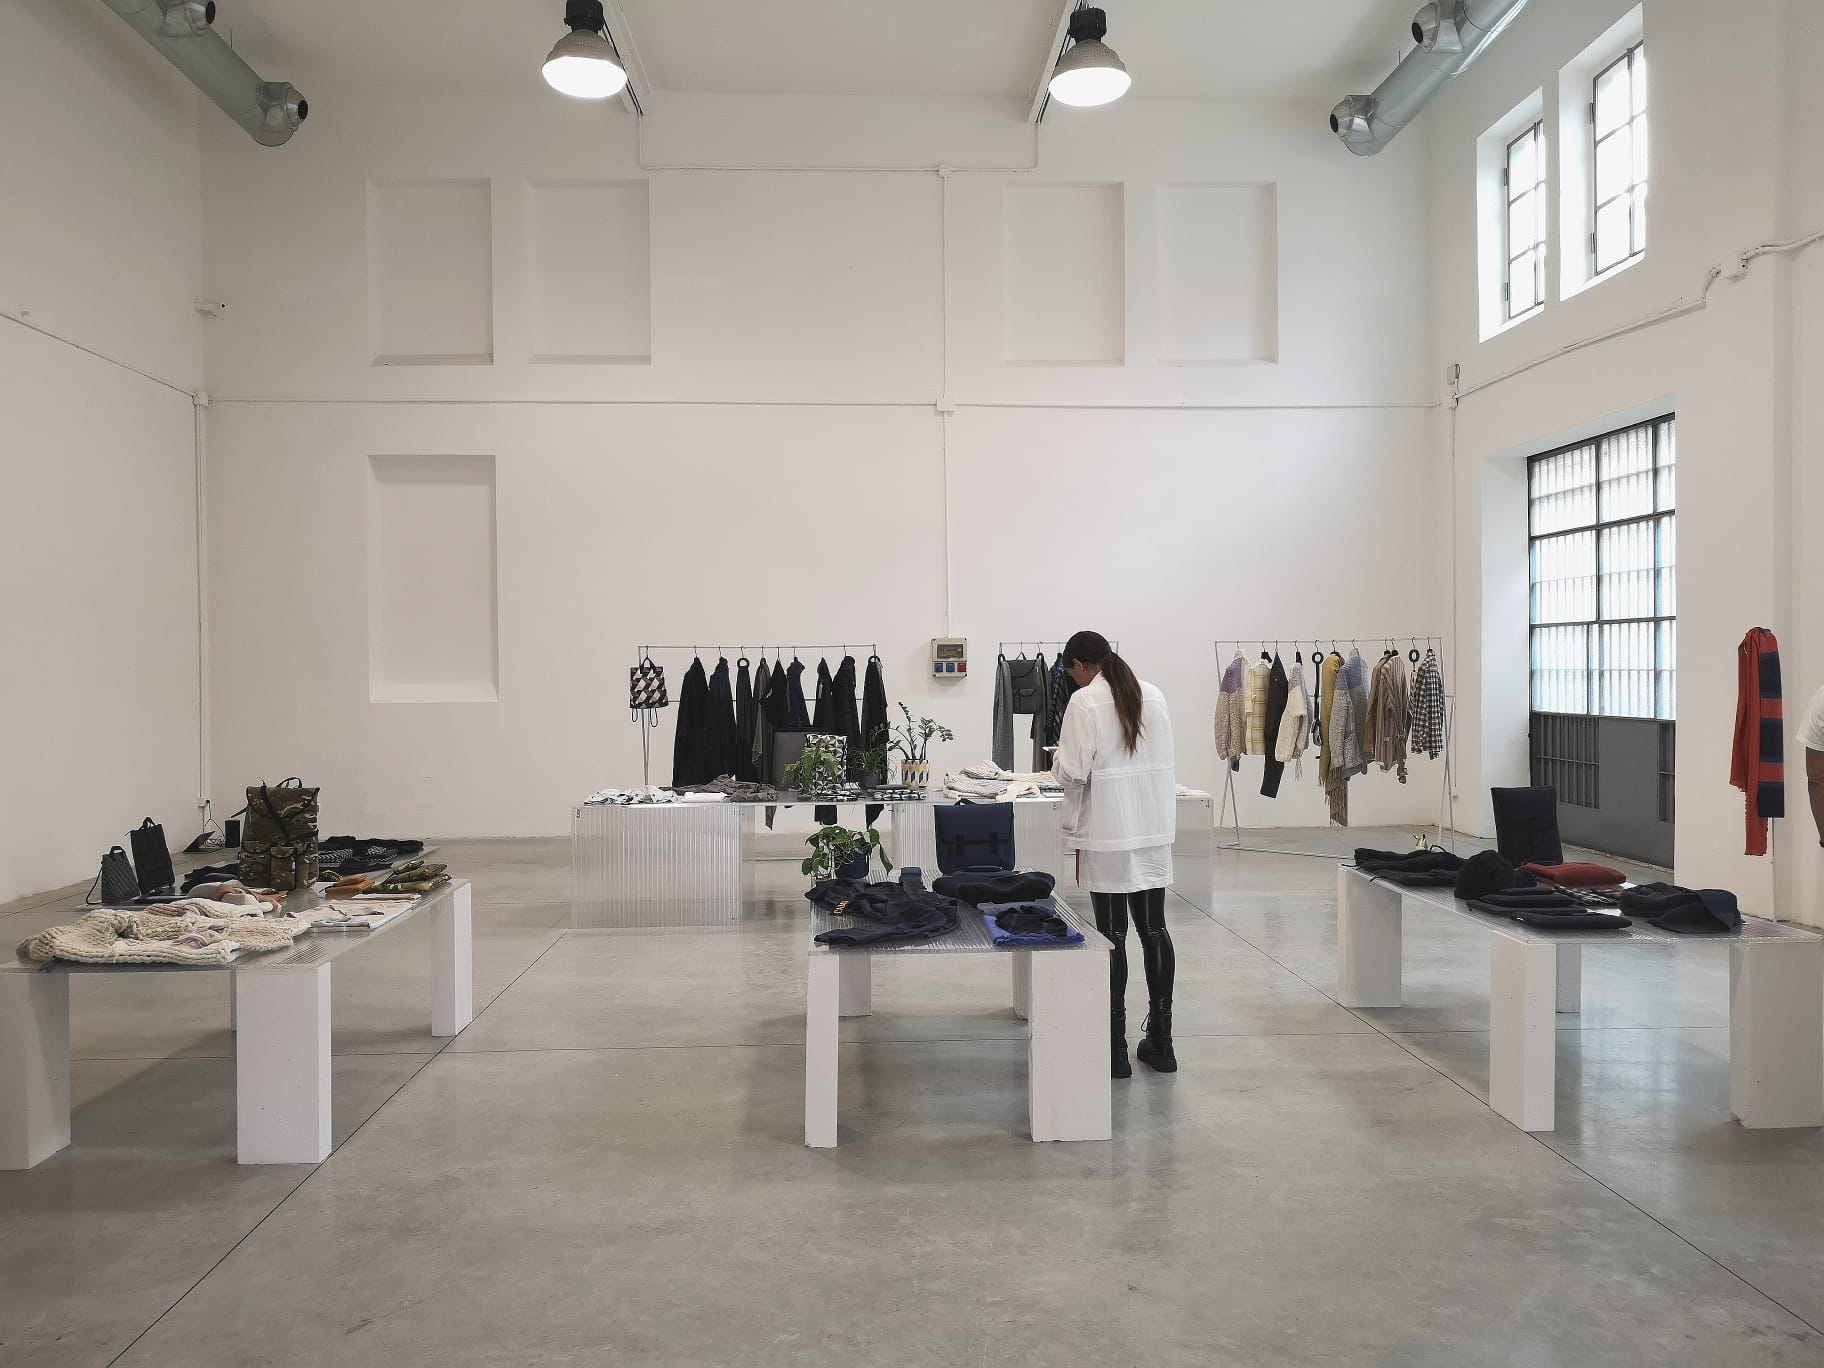 Opificio 31-Officina 31 - Open space, Spazio industriale di 180mq in Via Tortona 31 | location allestita 2